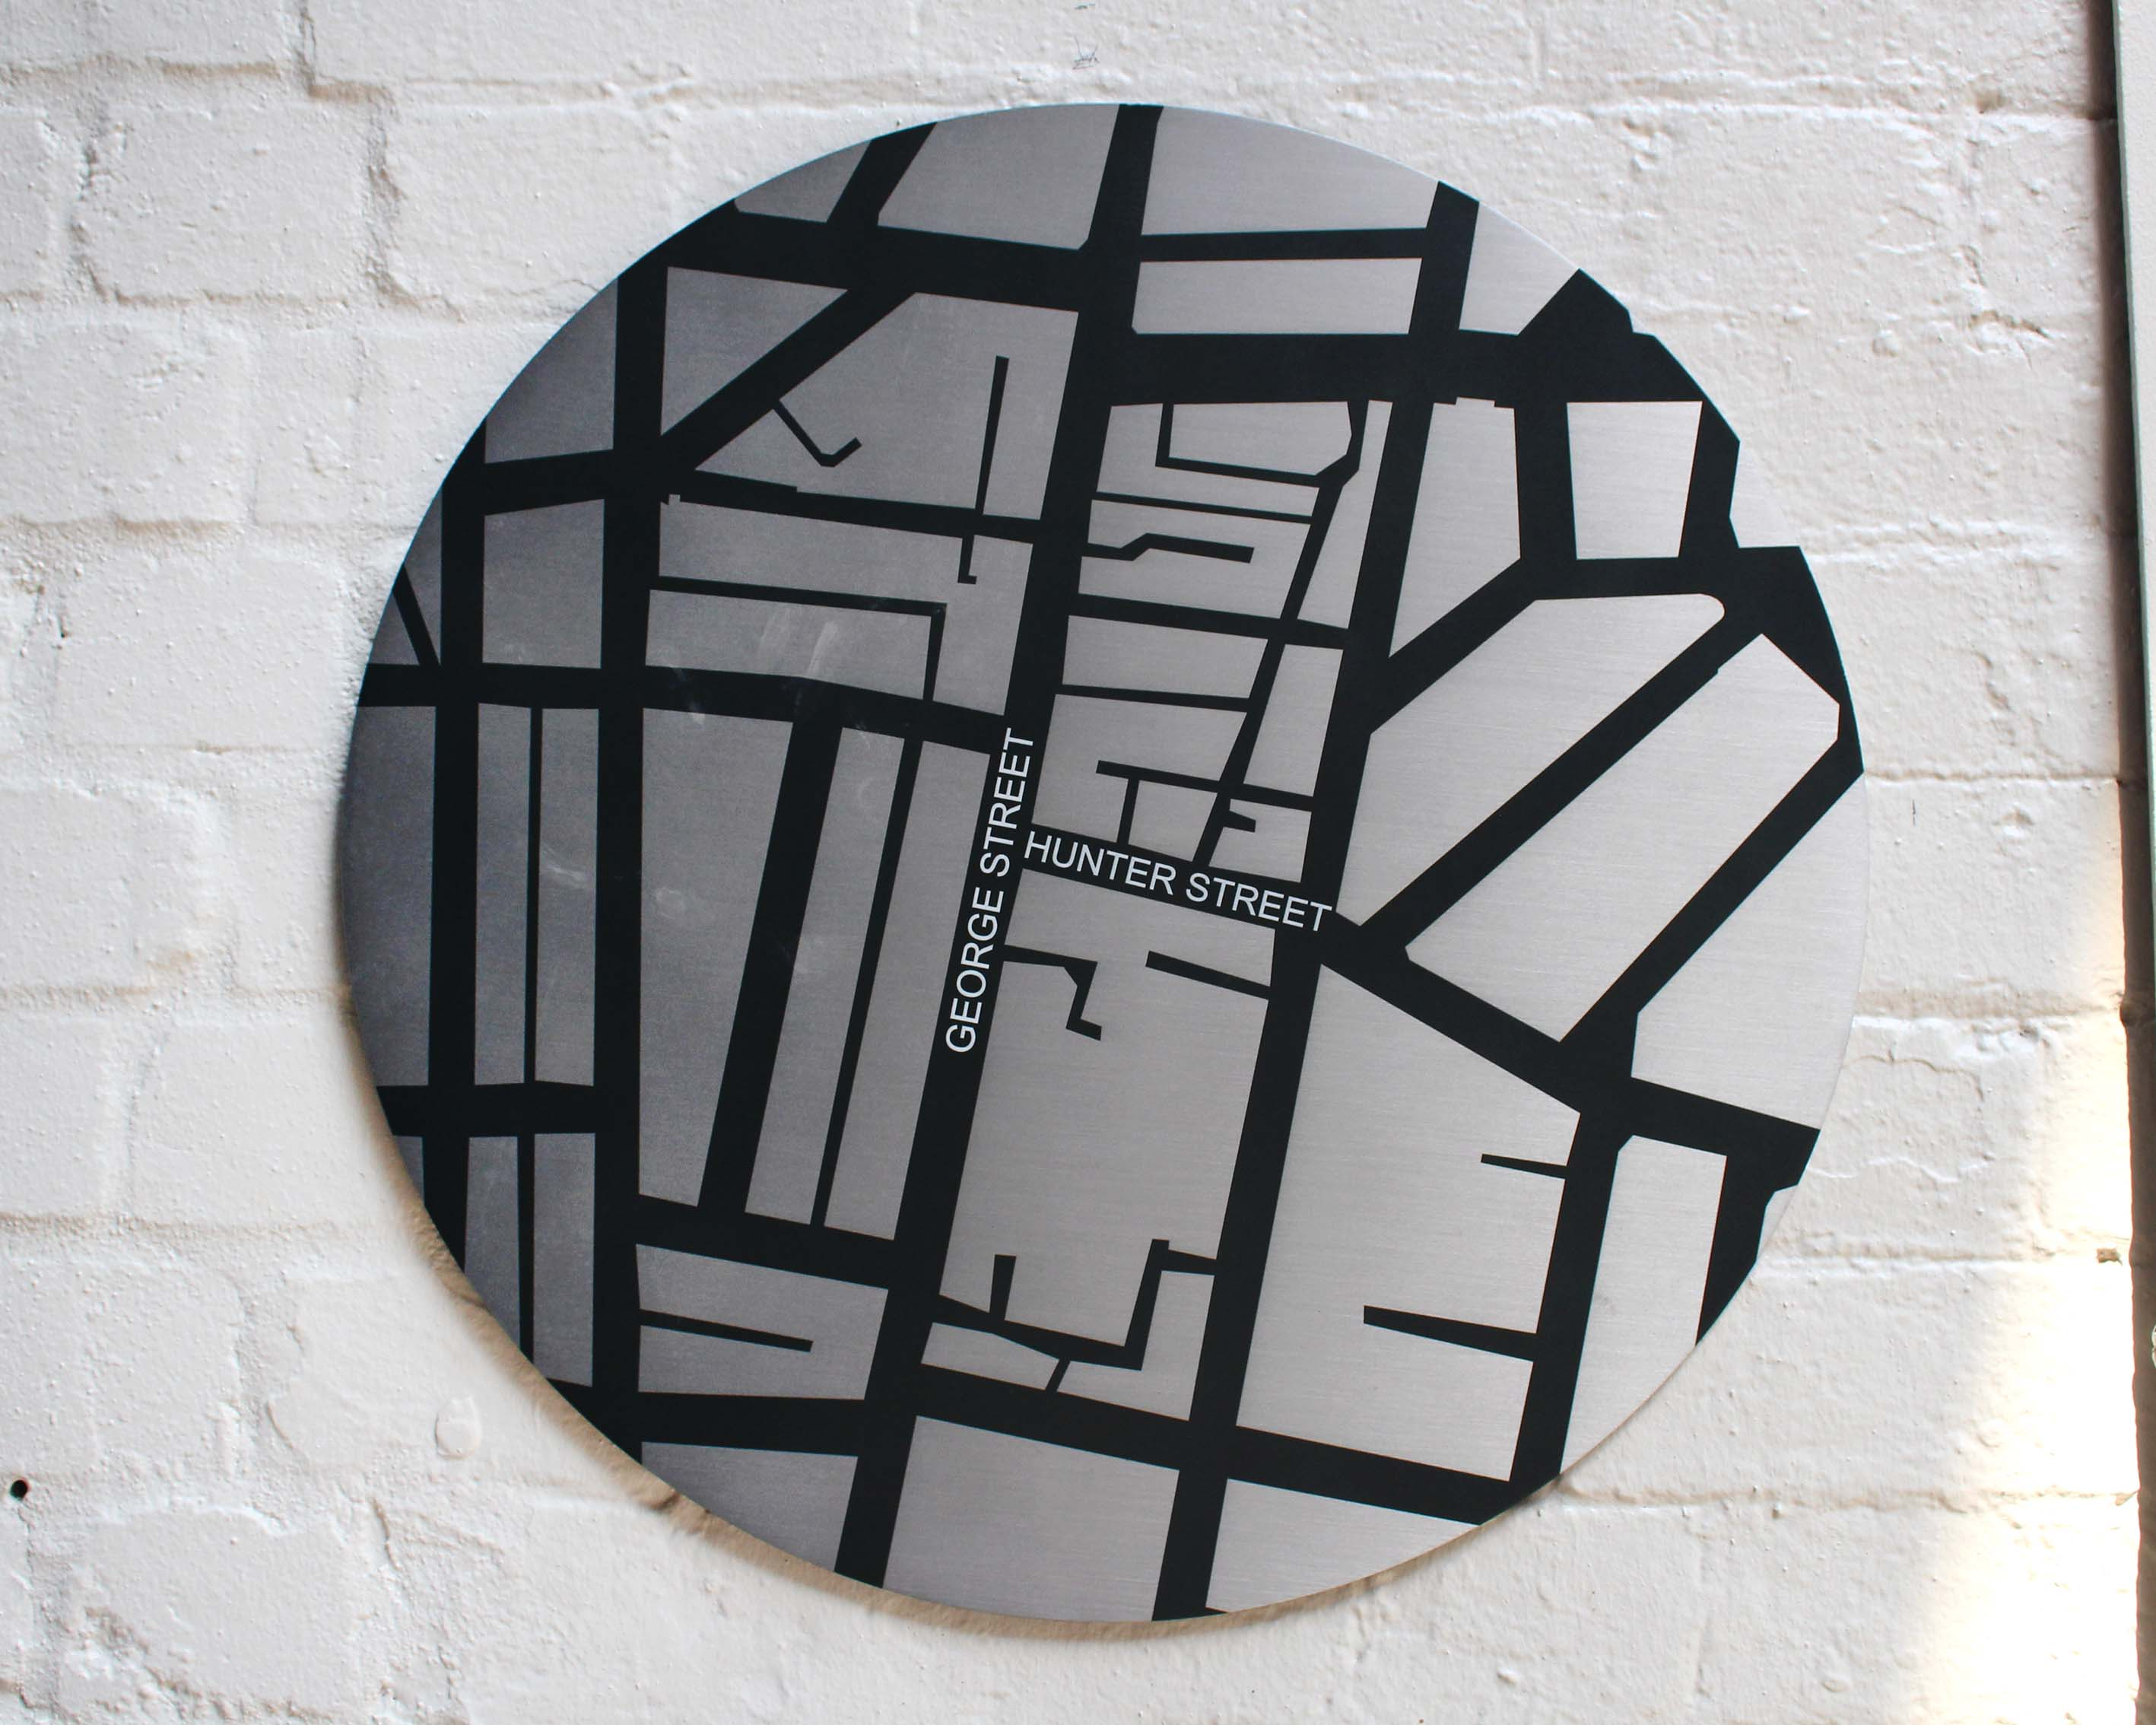 A stainless steel digitally printed external wall plaque showing the road map and intersection of George and Hunter Street.